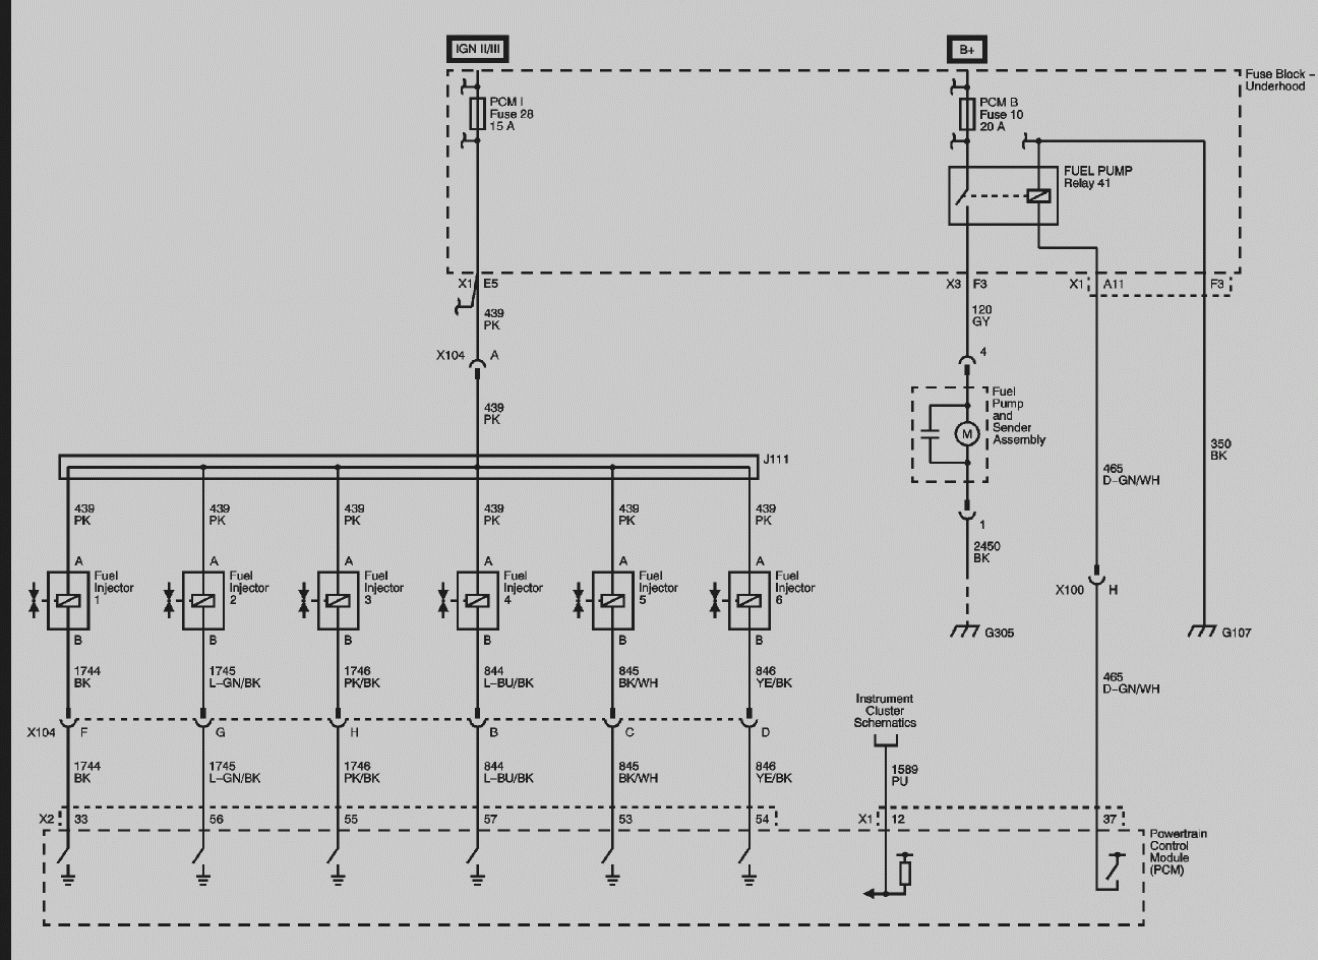 Fuel Injector Wiring Diagram - All Wiring Diagram Data - Fuel Injector Wiring Diagram